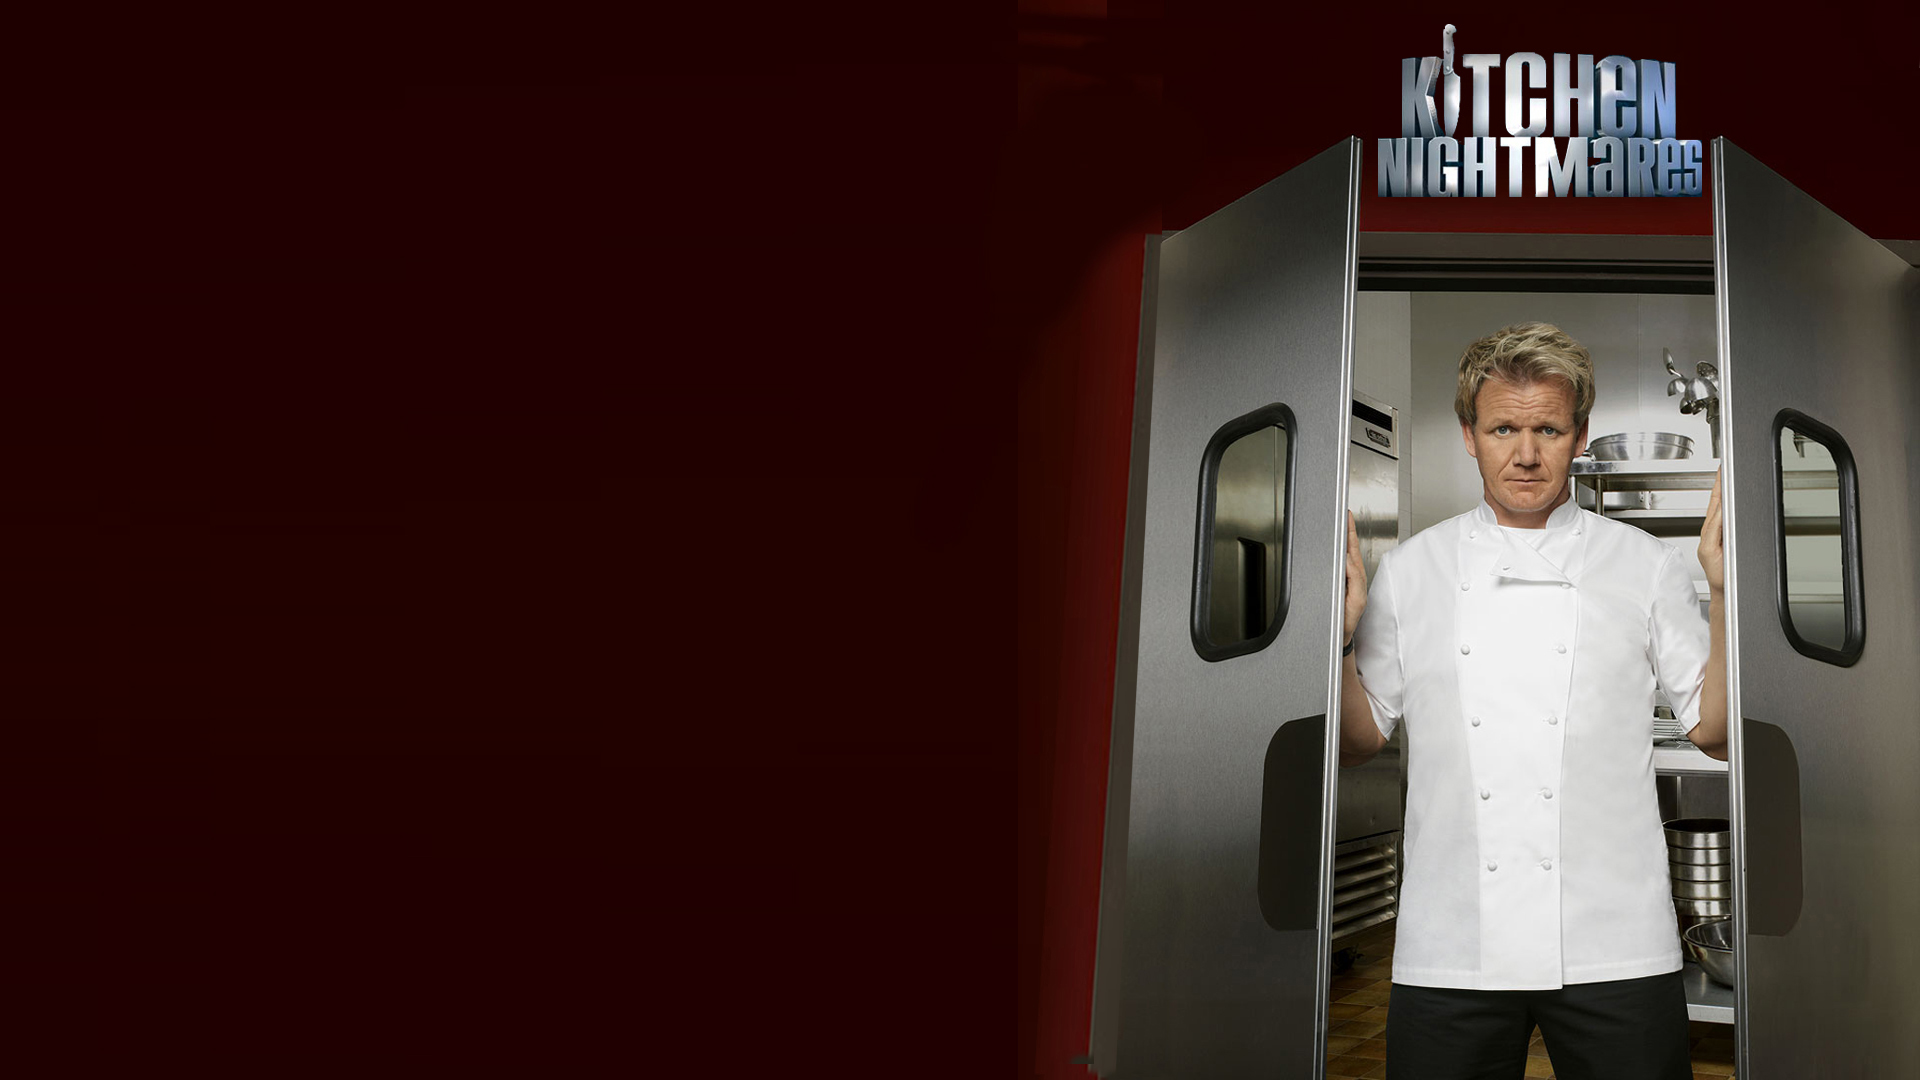 Kitchen Nightmares Full Episodes Online Season